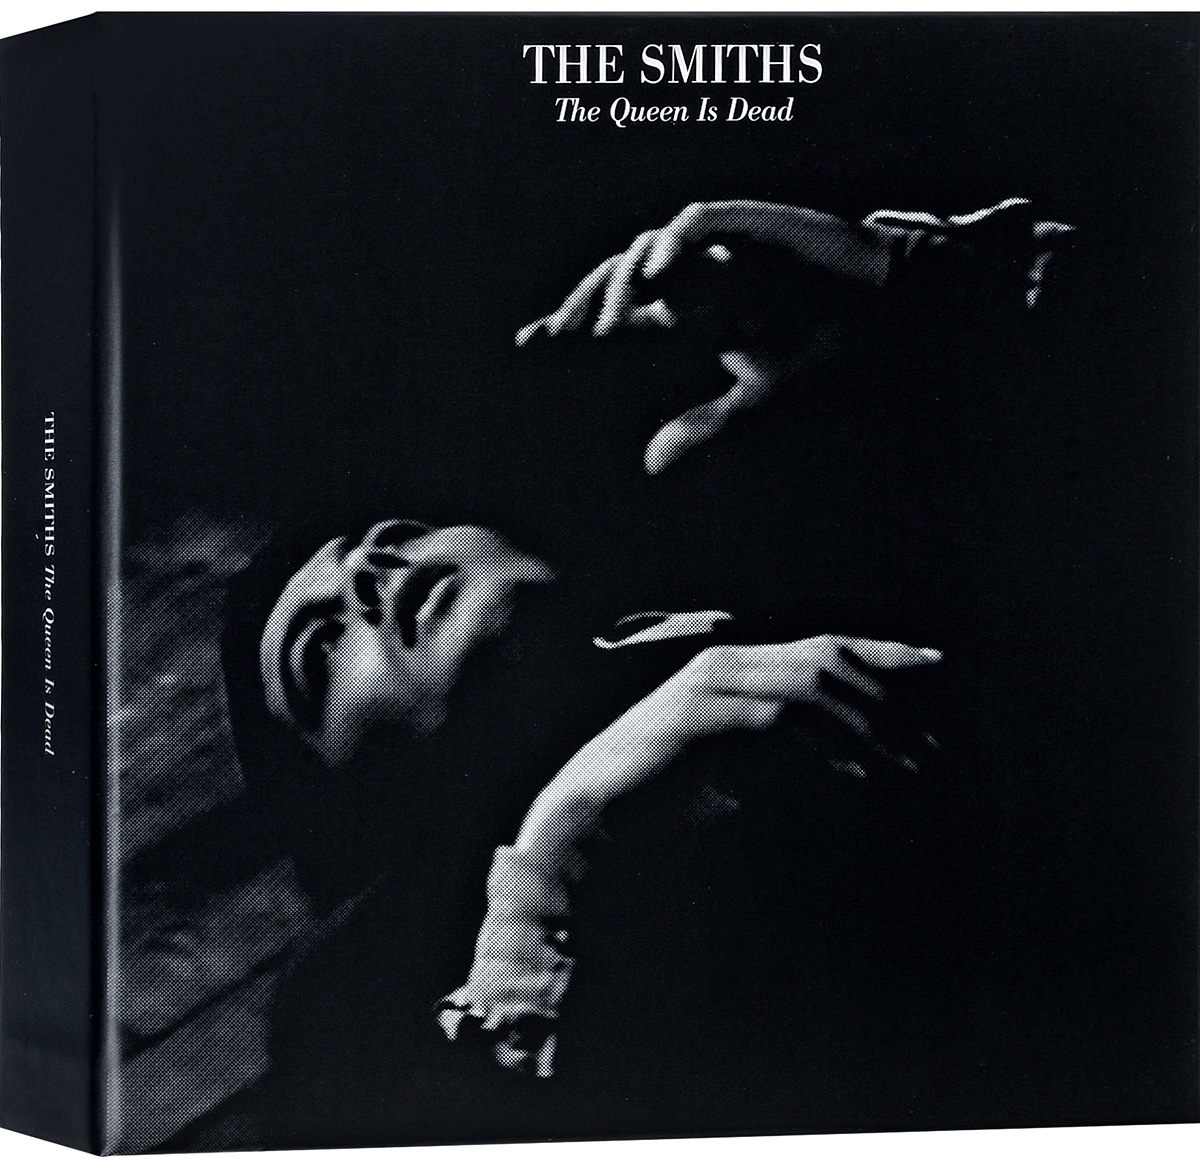 The Smiths The Smiths. The Queen Is Dead (3 CD + DVD) гардемарины 3 dvd